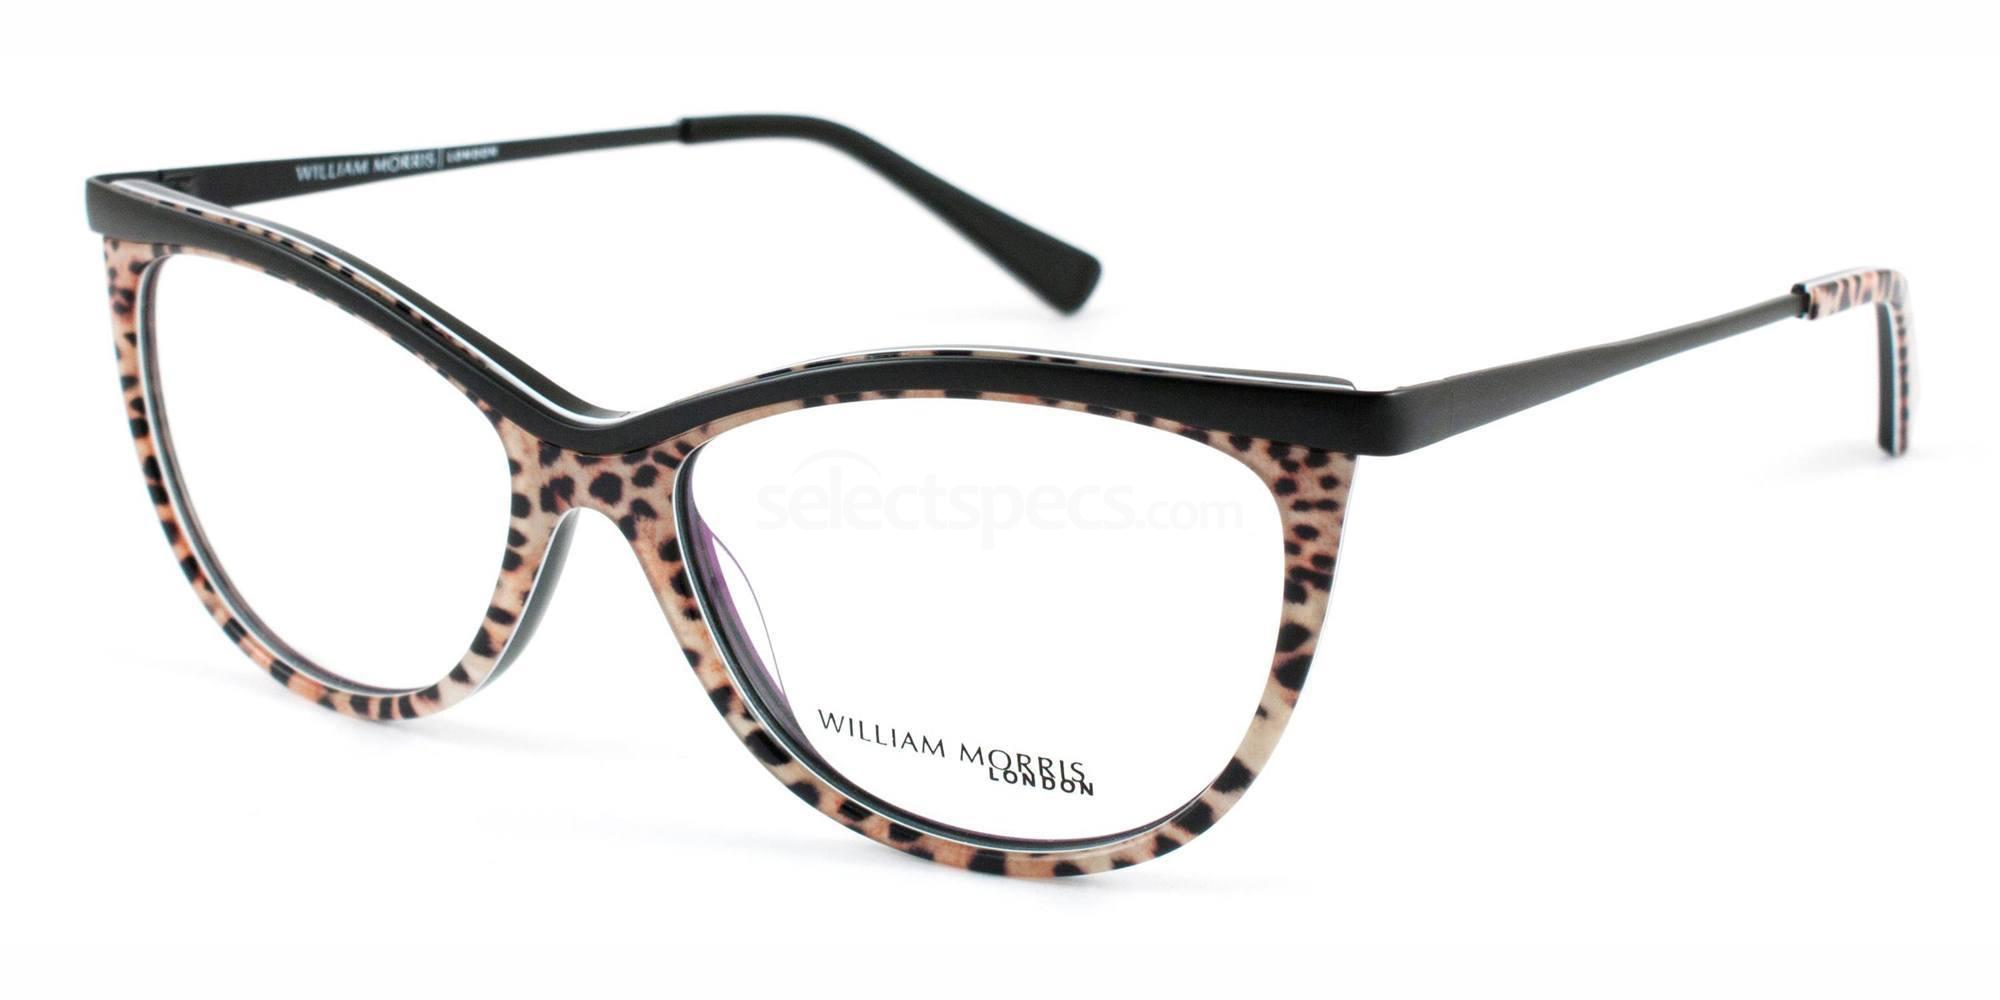 589806f7dc23 William Morris London WL7228.  William_Morris_London_Leopard_precscription_glasses